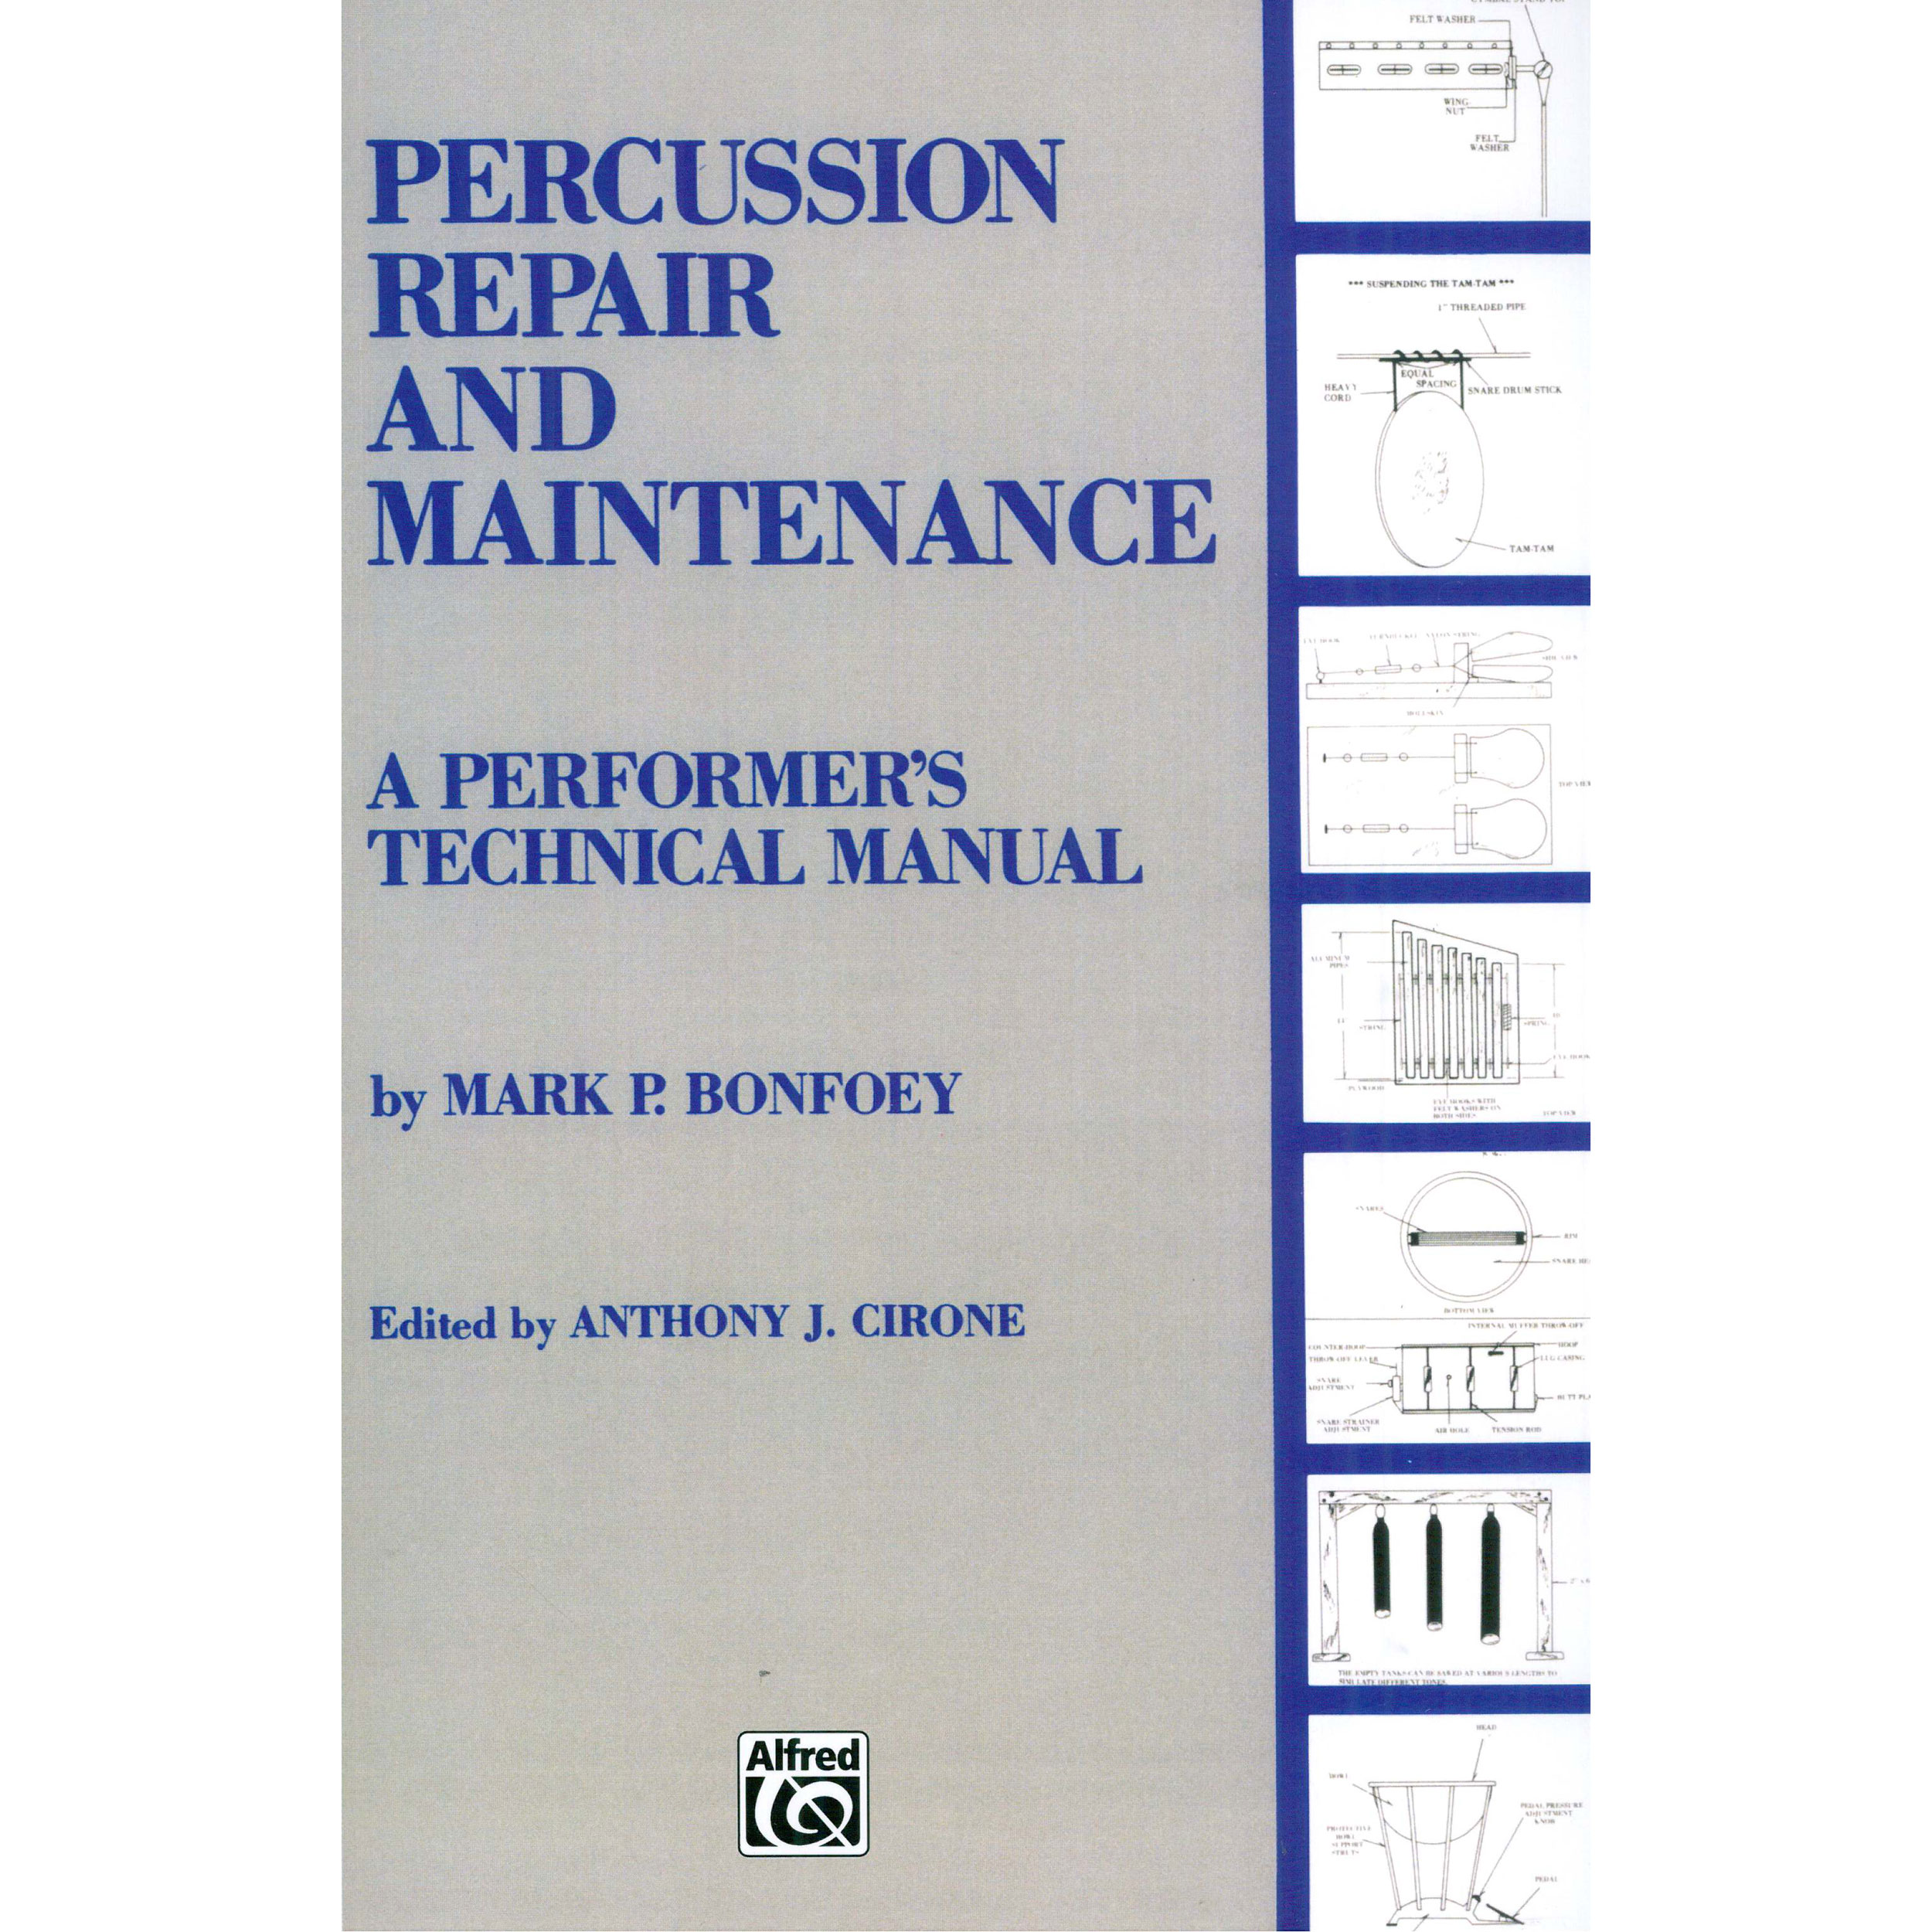 Percussion Repair and Maintenance by Mark Bonfoey ed. Cirone